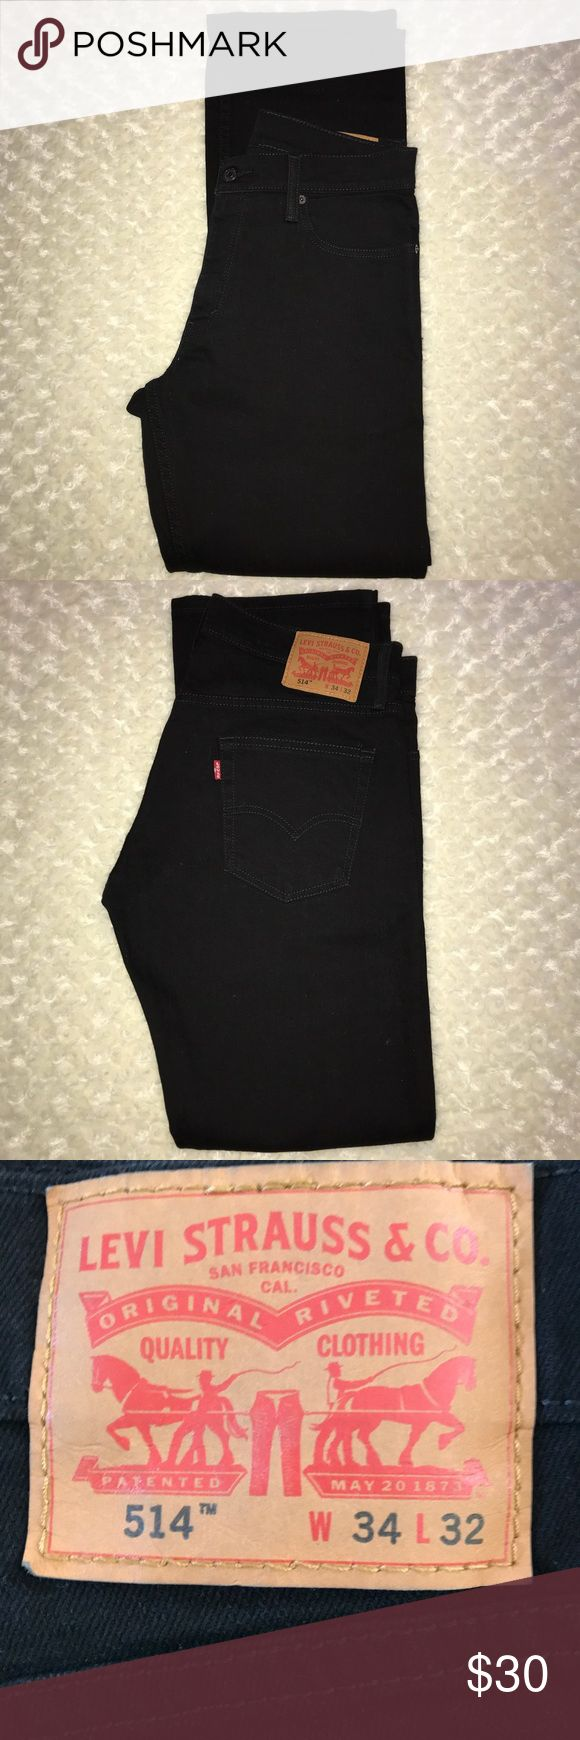 Men's black Levi 514 straight jeans 34W X 32L NWOT Men's black Levi jeans size 34W X 32L new without tags never worn, no holes, stains, or pulls Levi's Jeans Straight